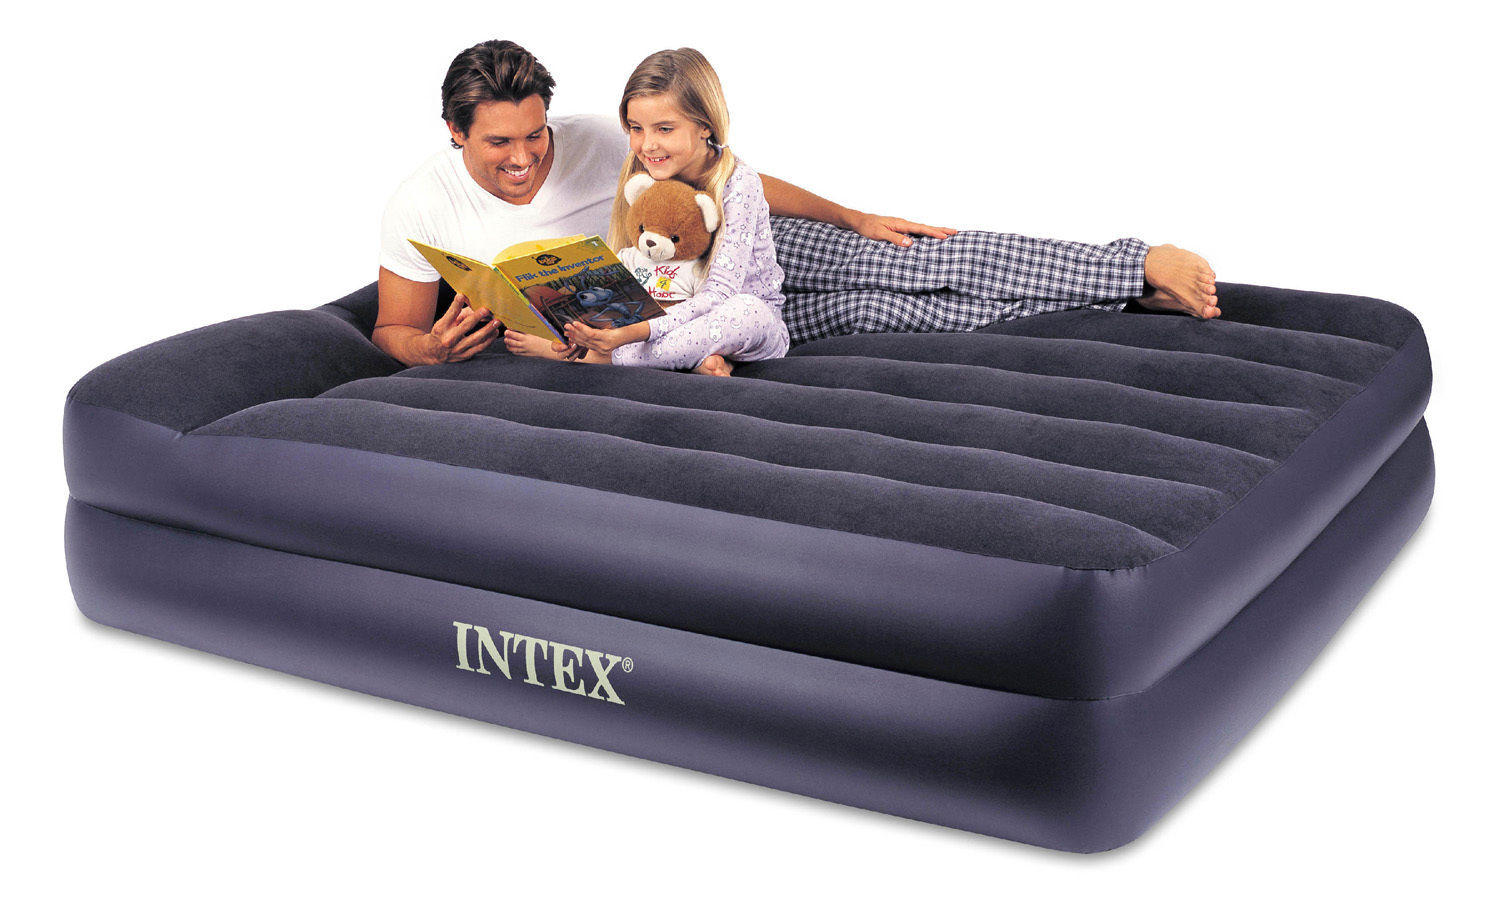 Intex Queen Pillow Rest Airbed Air Mattress Bed with Built-In Pump